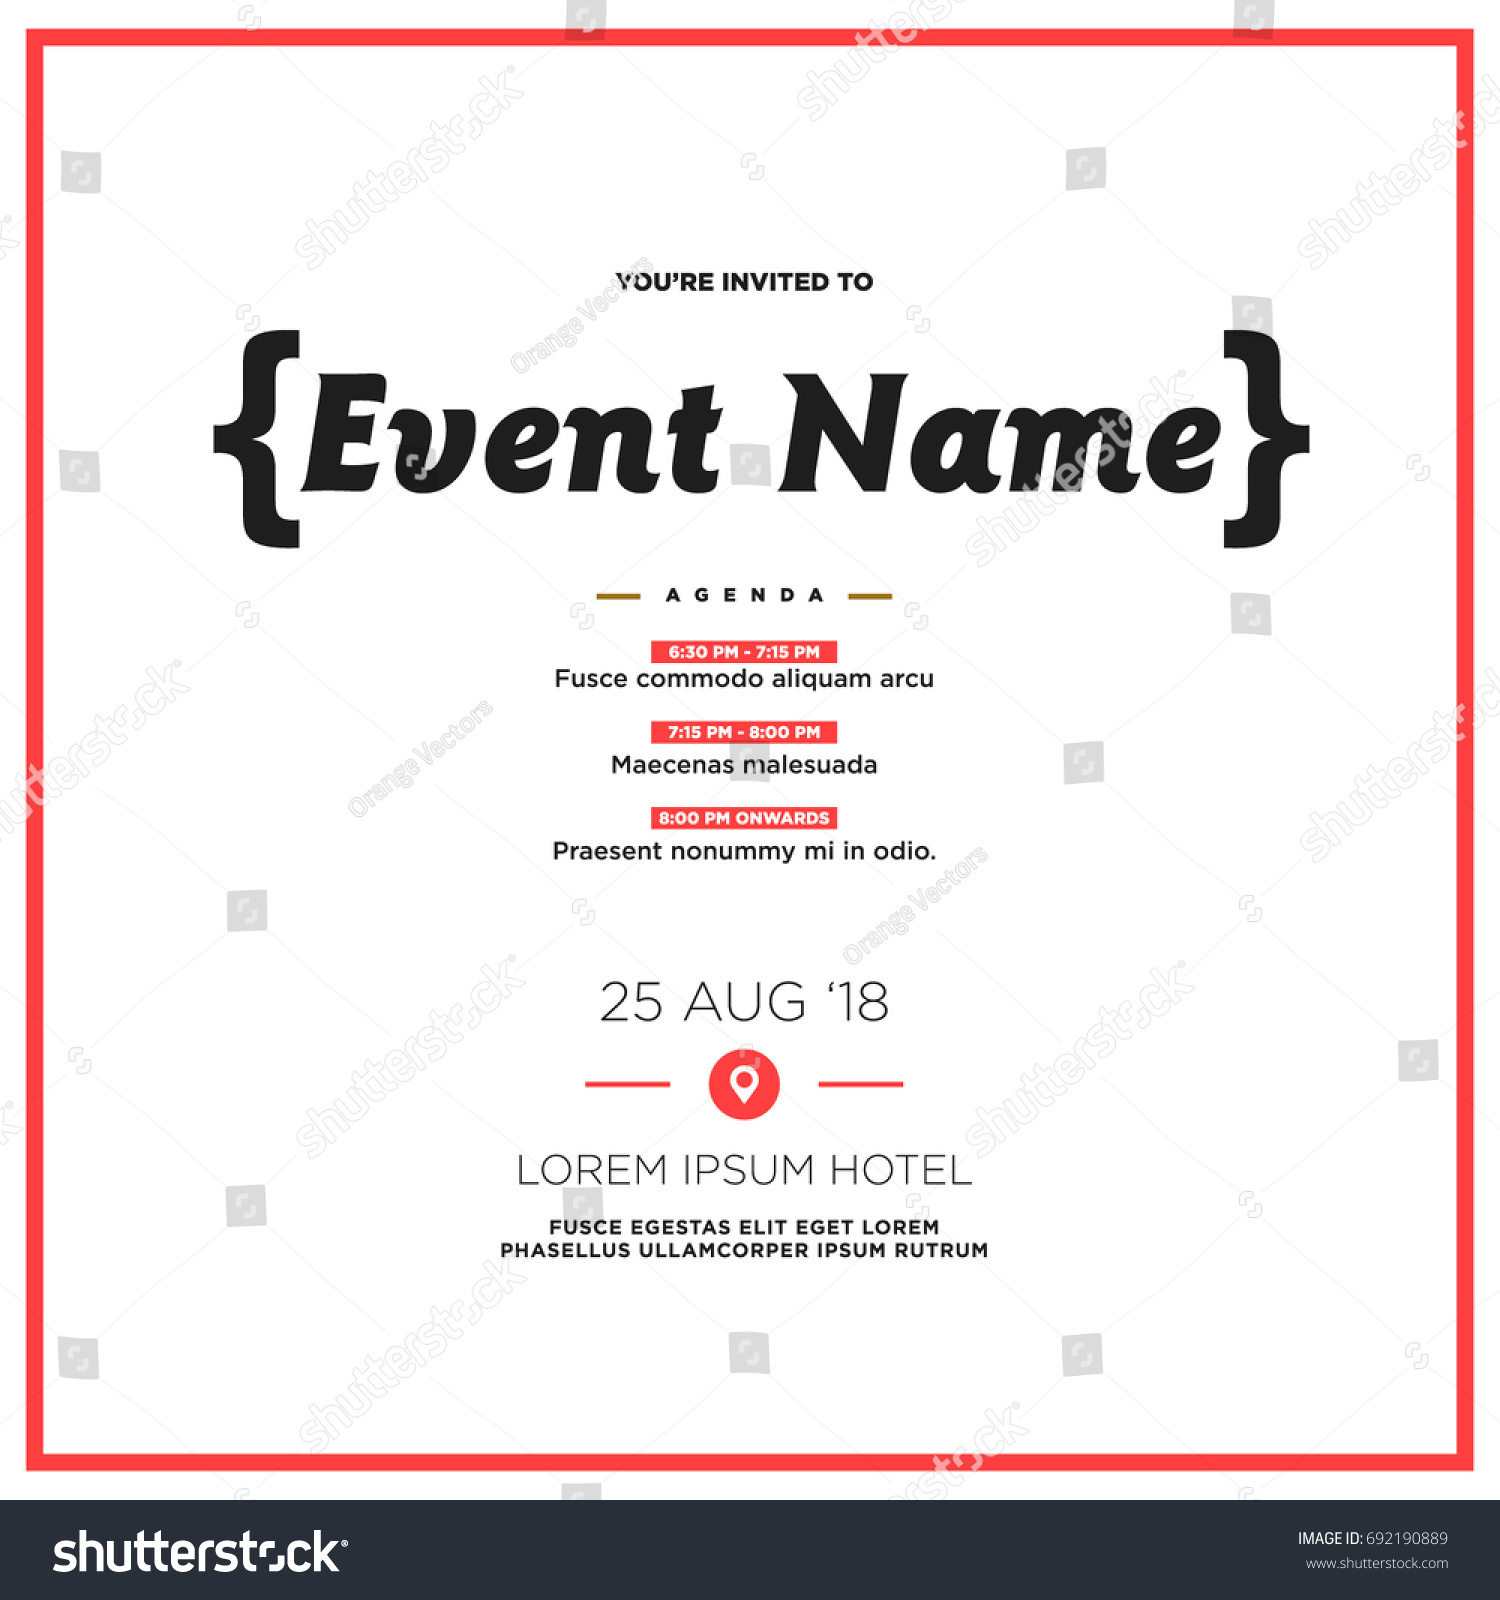 Event invitation template agenda venue date stock vector 692190889 event invitation template with agenda venue and date details stopboris Image collections